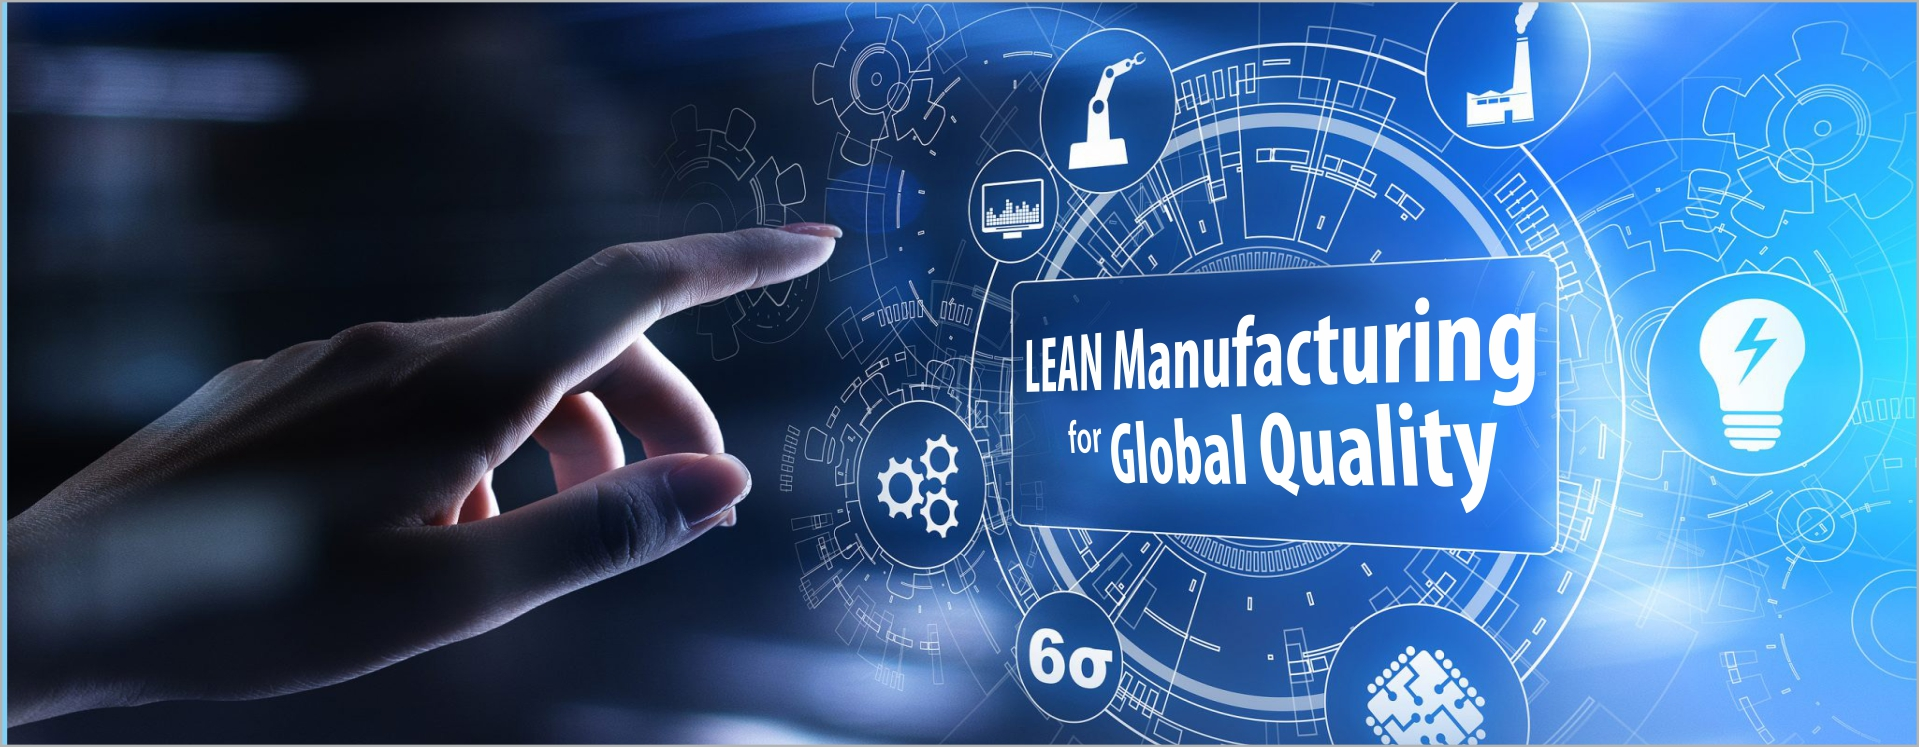 Total Quality Management - Essential for survival and growth of every industry